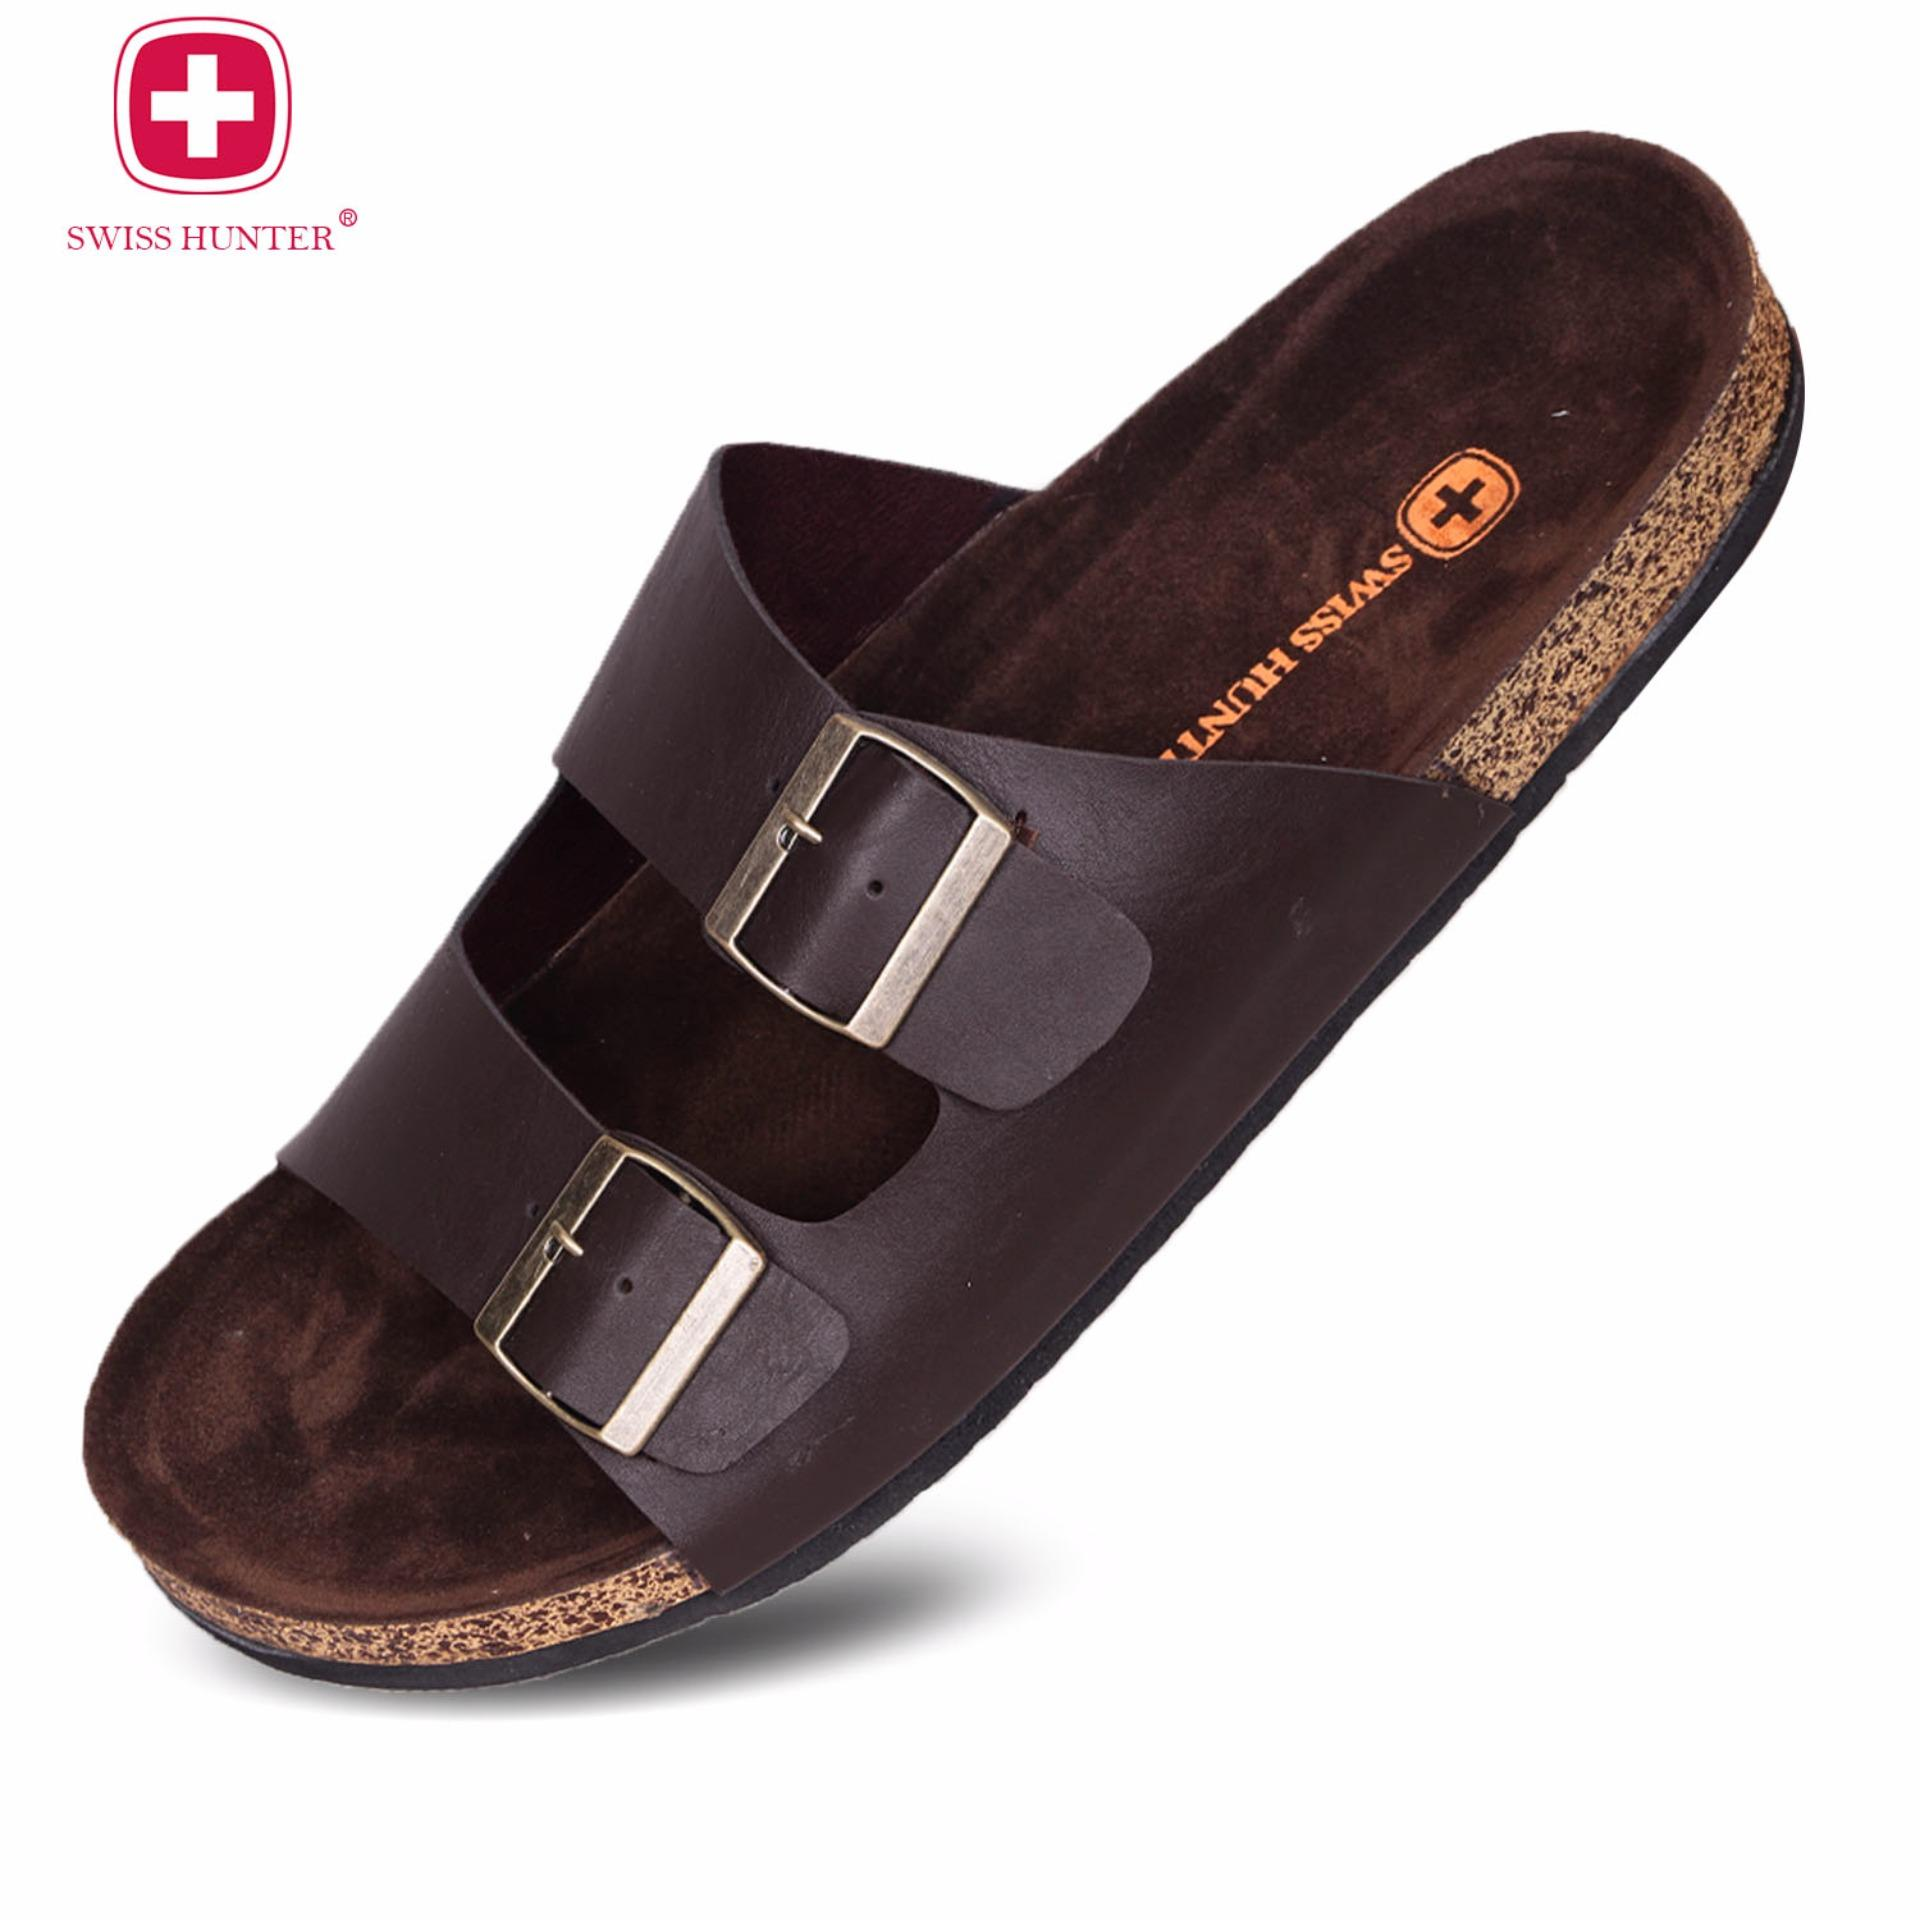 Swiss Hunter Magnus Sandal DarkBrownIDR75000. Rp 75.000